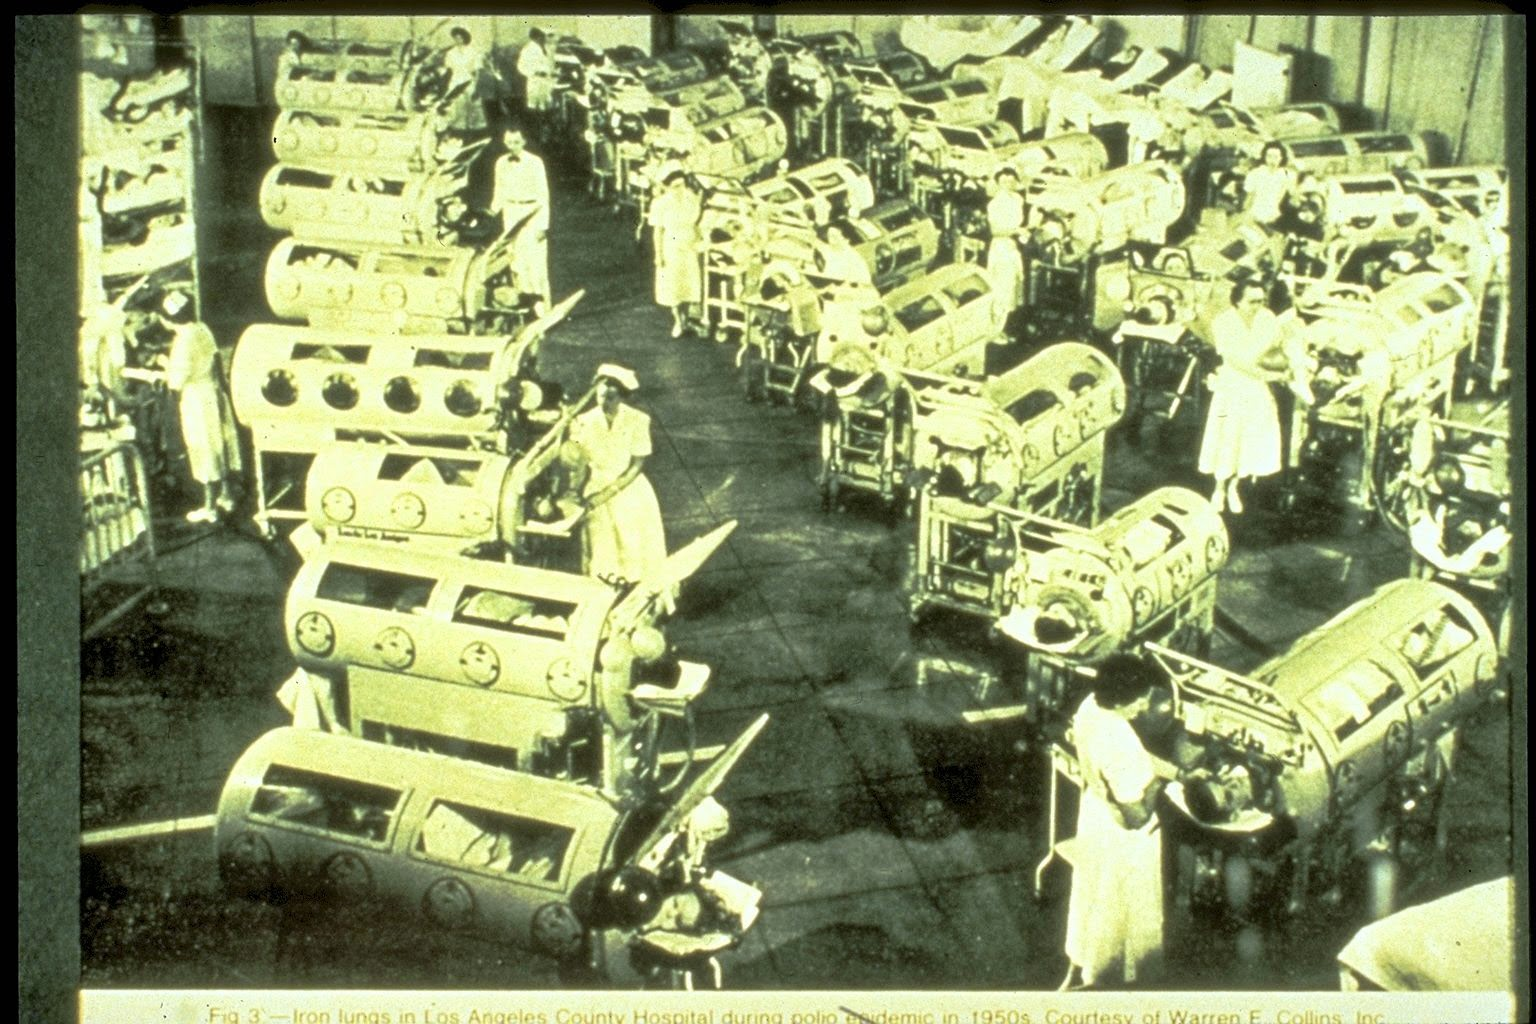 Hospital respiratory ward in Los Angeles, 1952